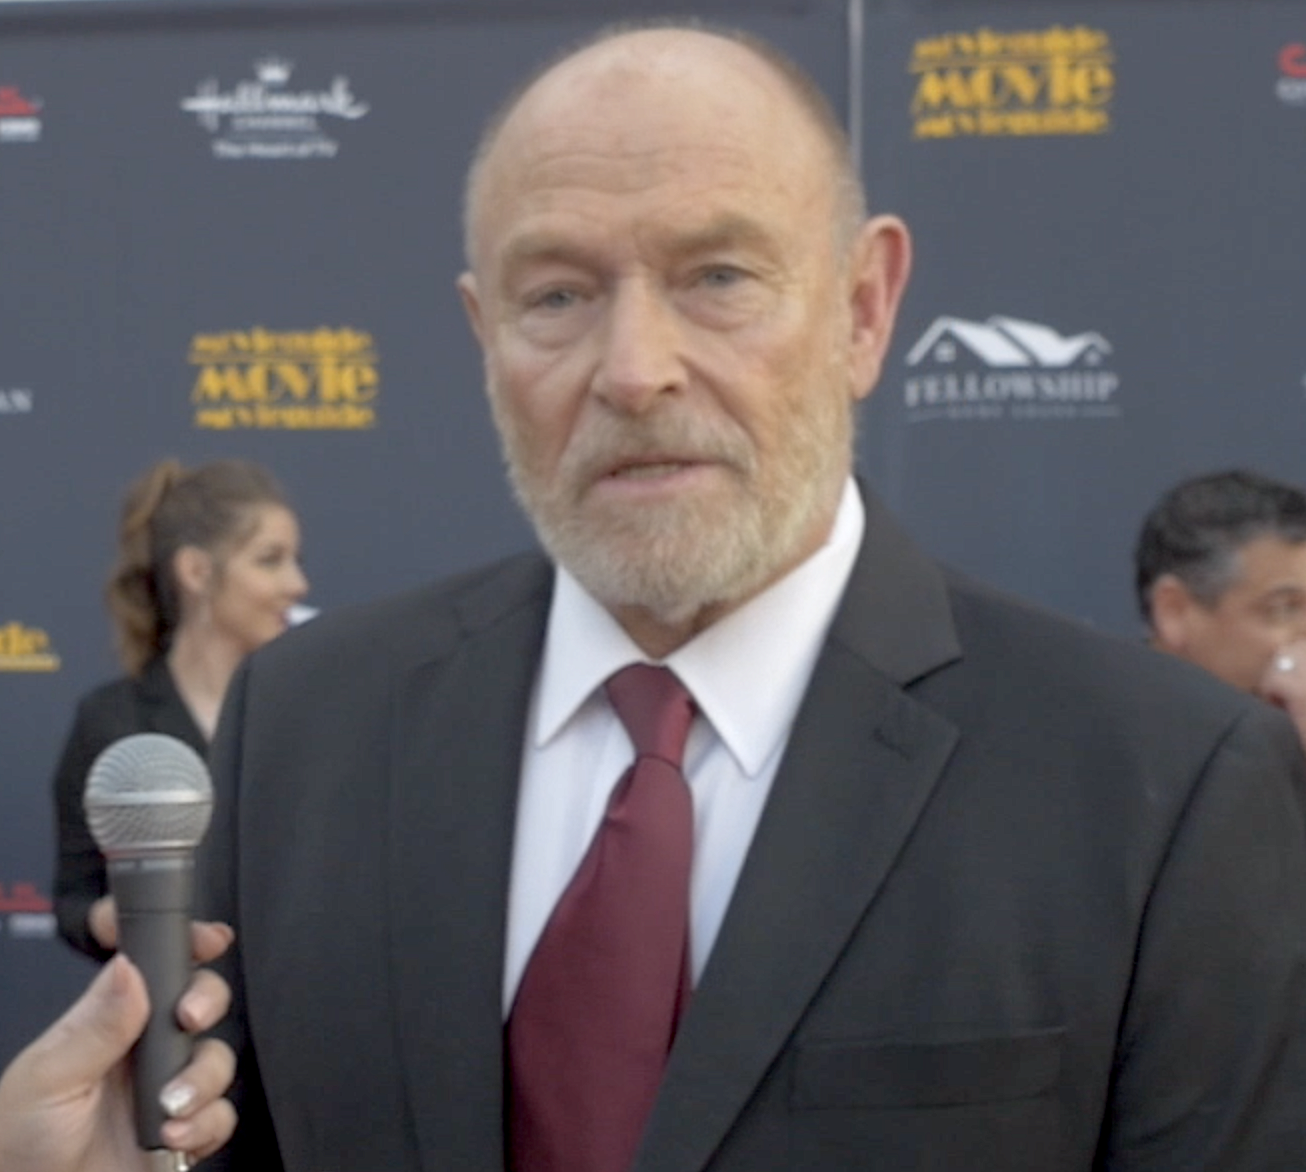 Corbin Bernsen says clashes between believers and nonbelievers is 'venomous'